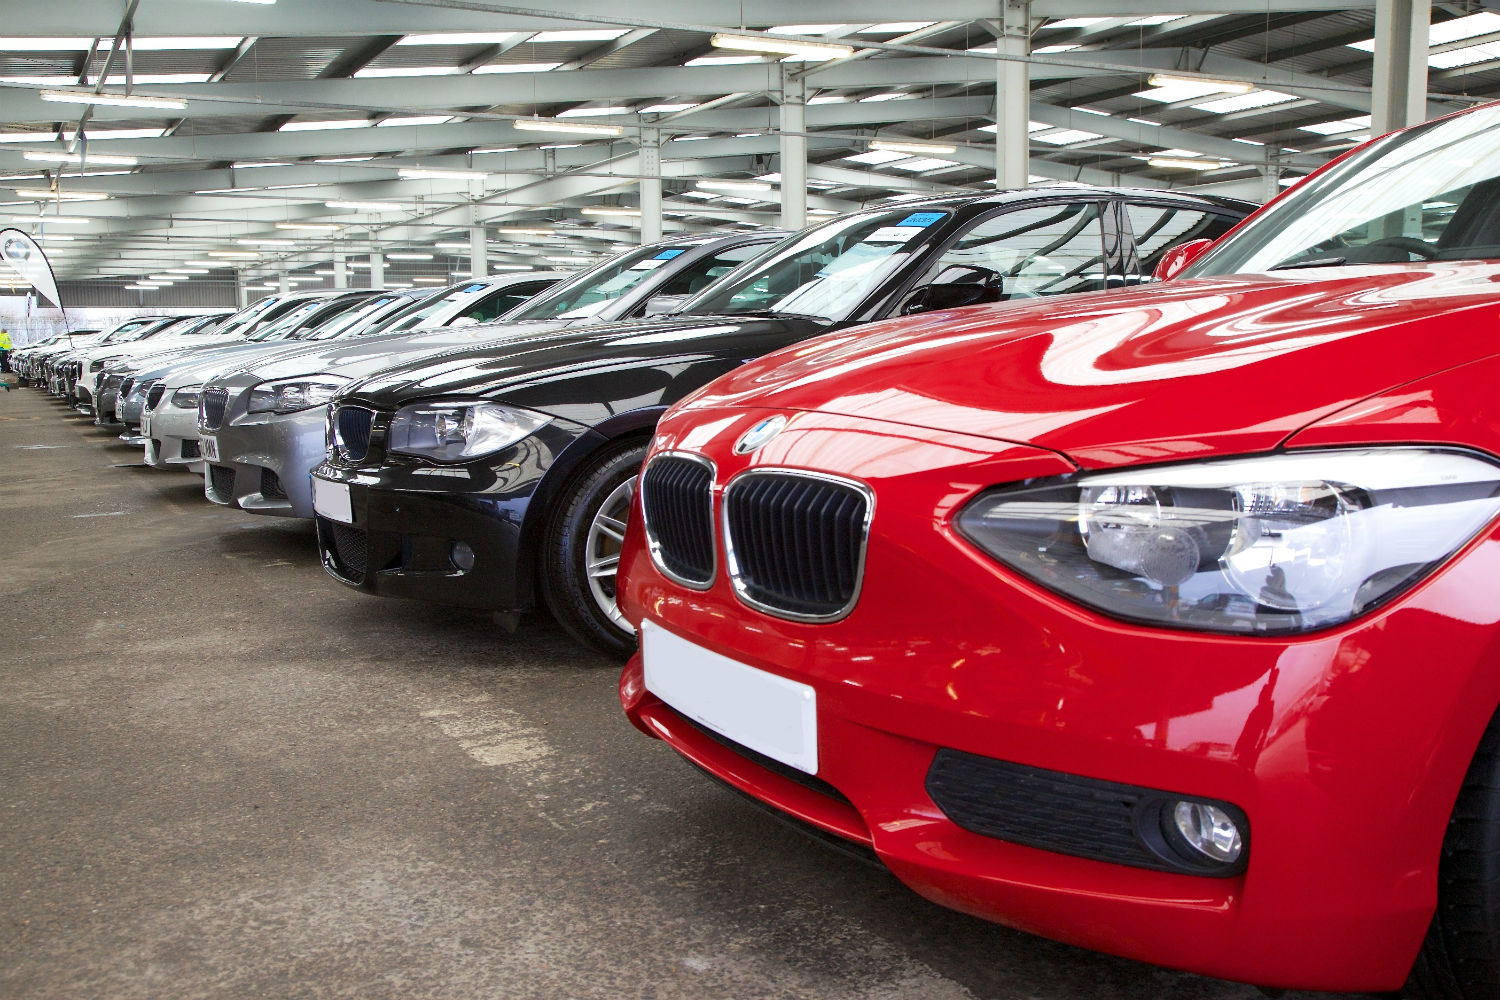 Fleet cars parked and lined up for an auction